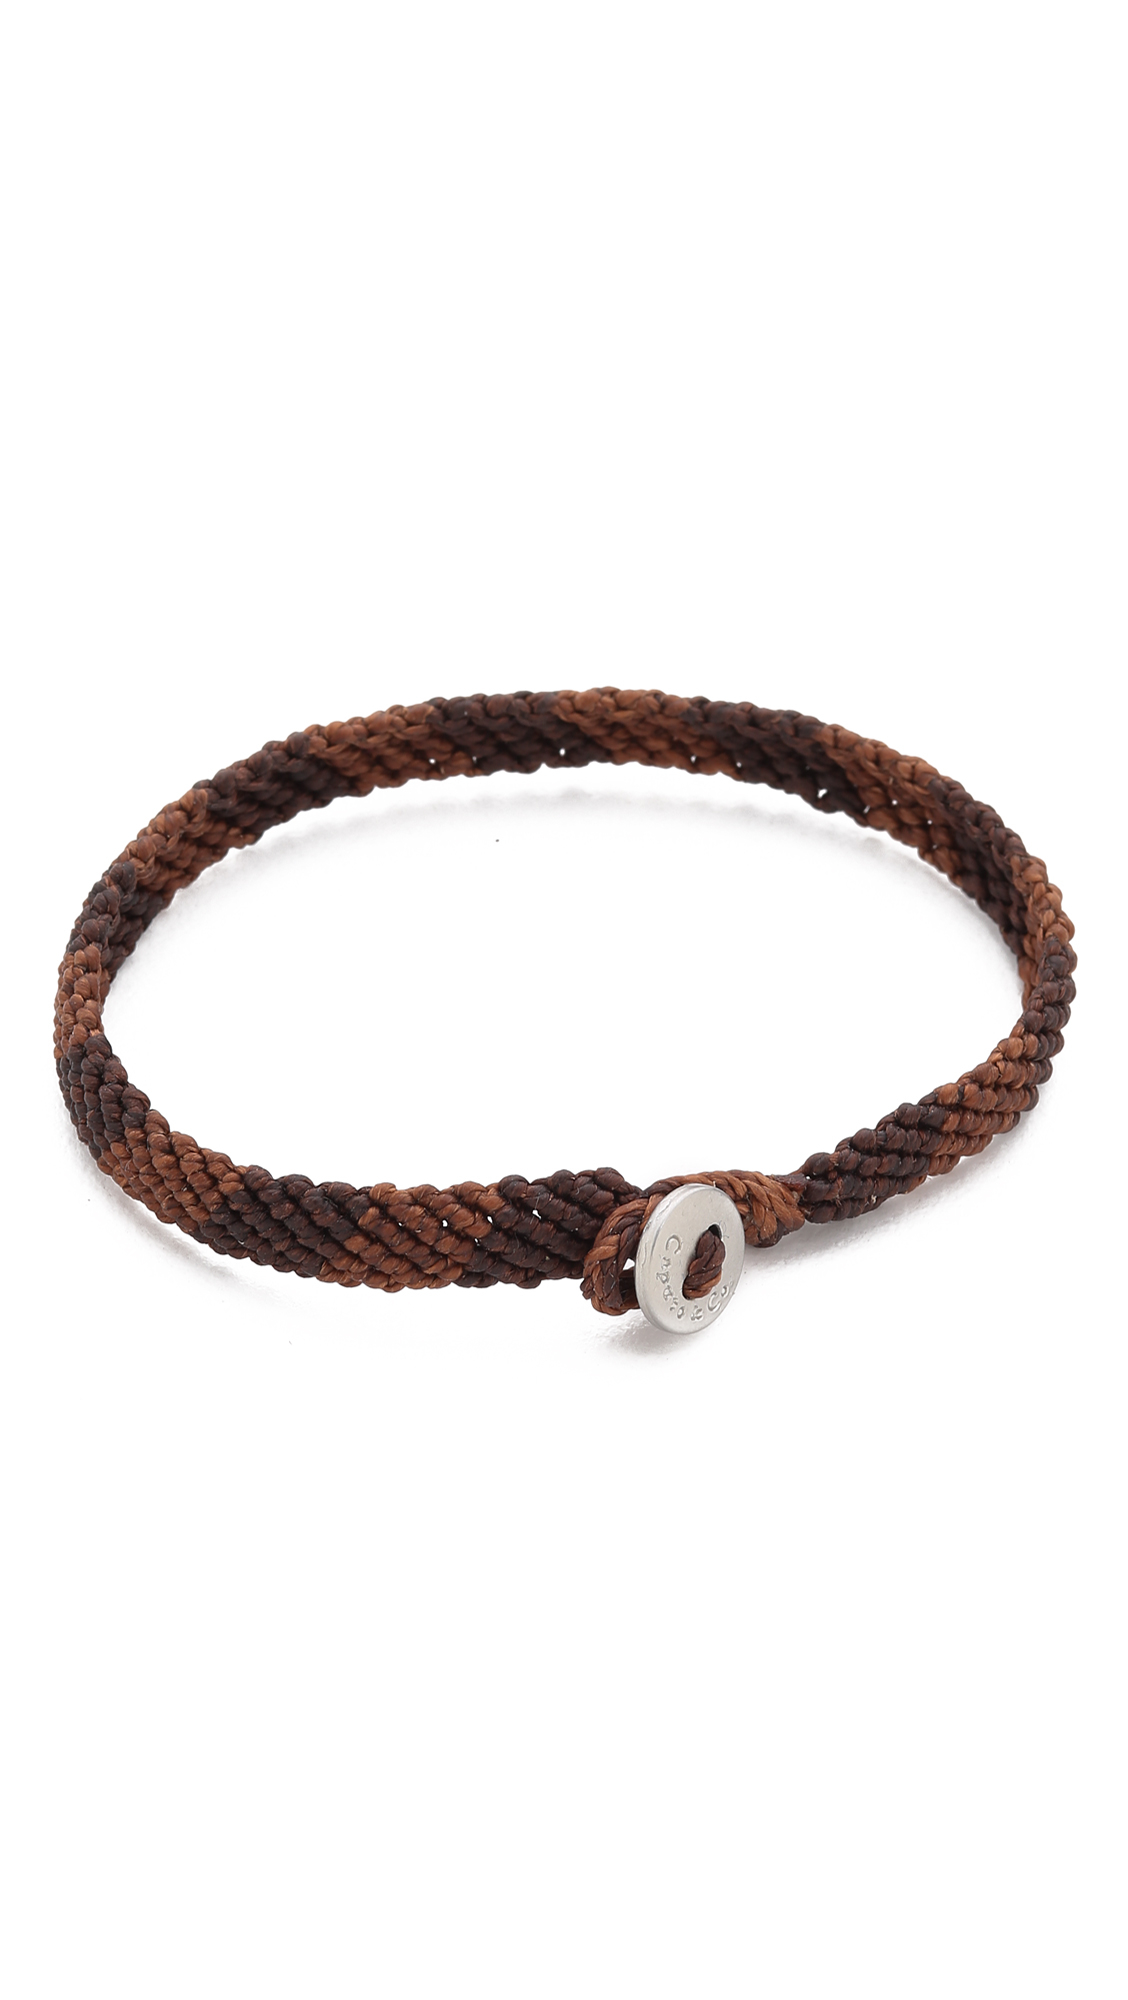 Caputo Co Hand Knotted Rugby Bracelet In Brown For Men